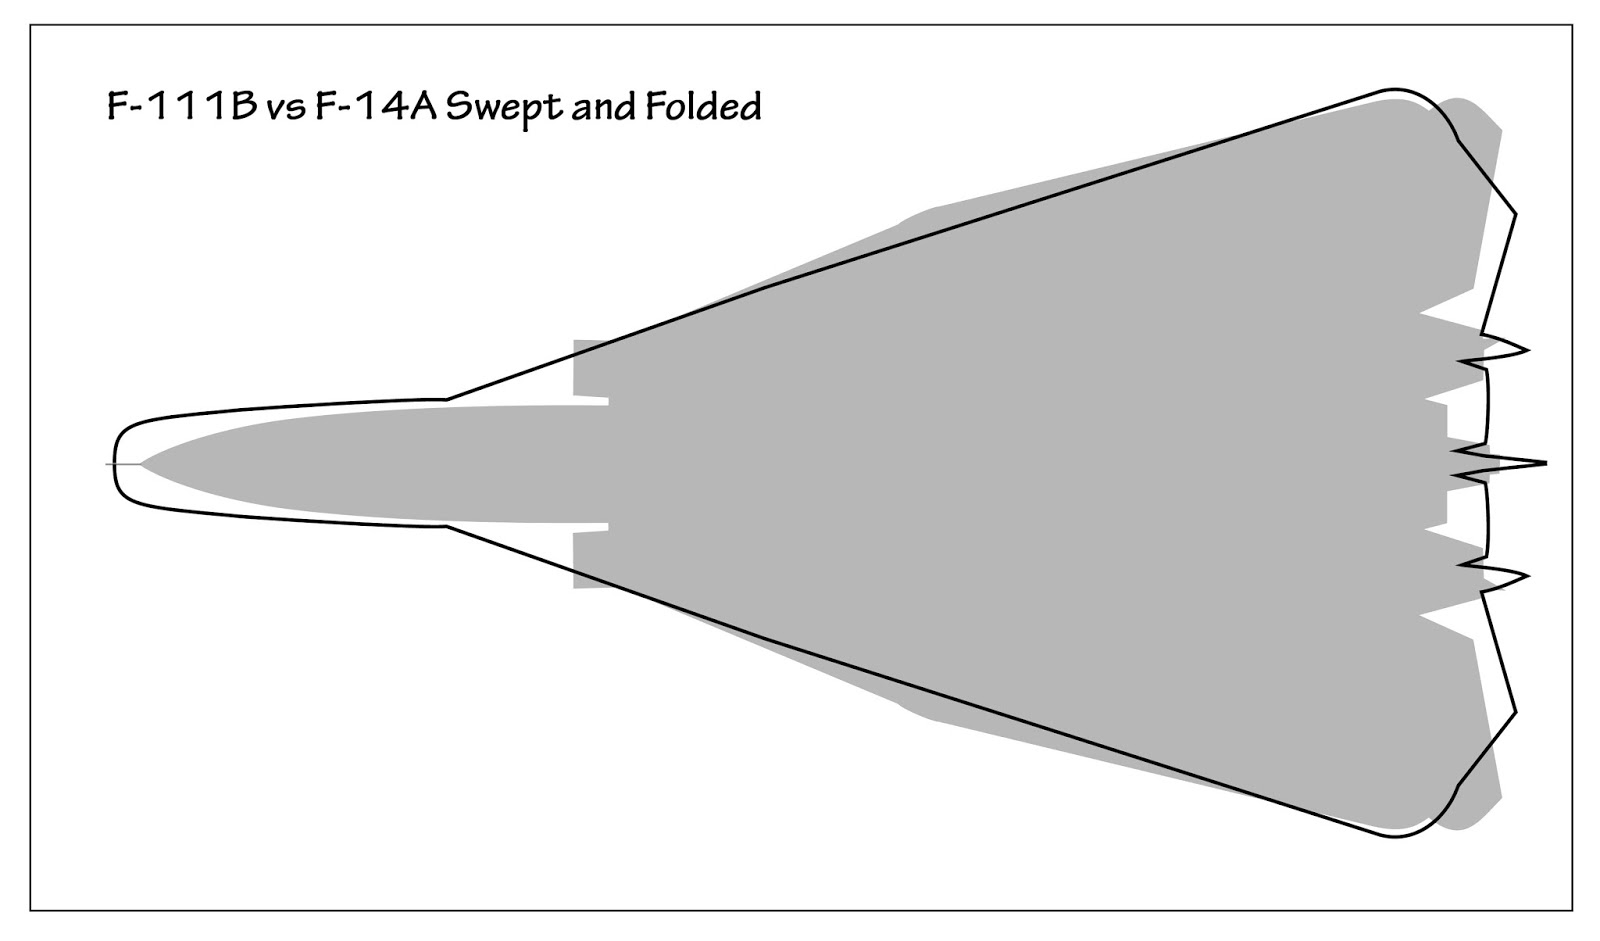 hight resolution of  full disclosure the f 111b s nose is folded upward as it was designed to be for parking on a carrier deck